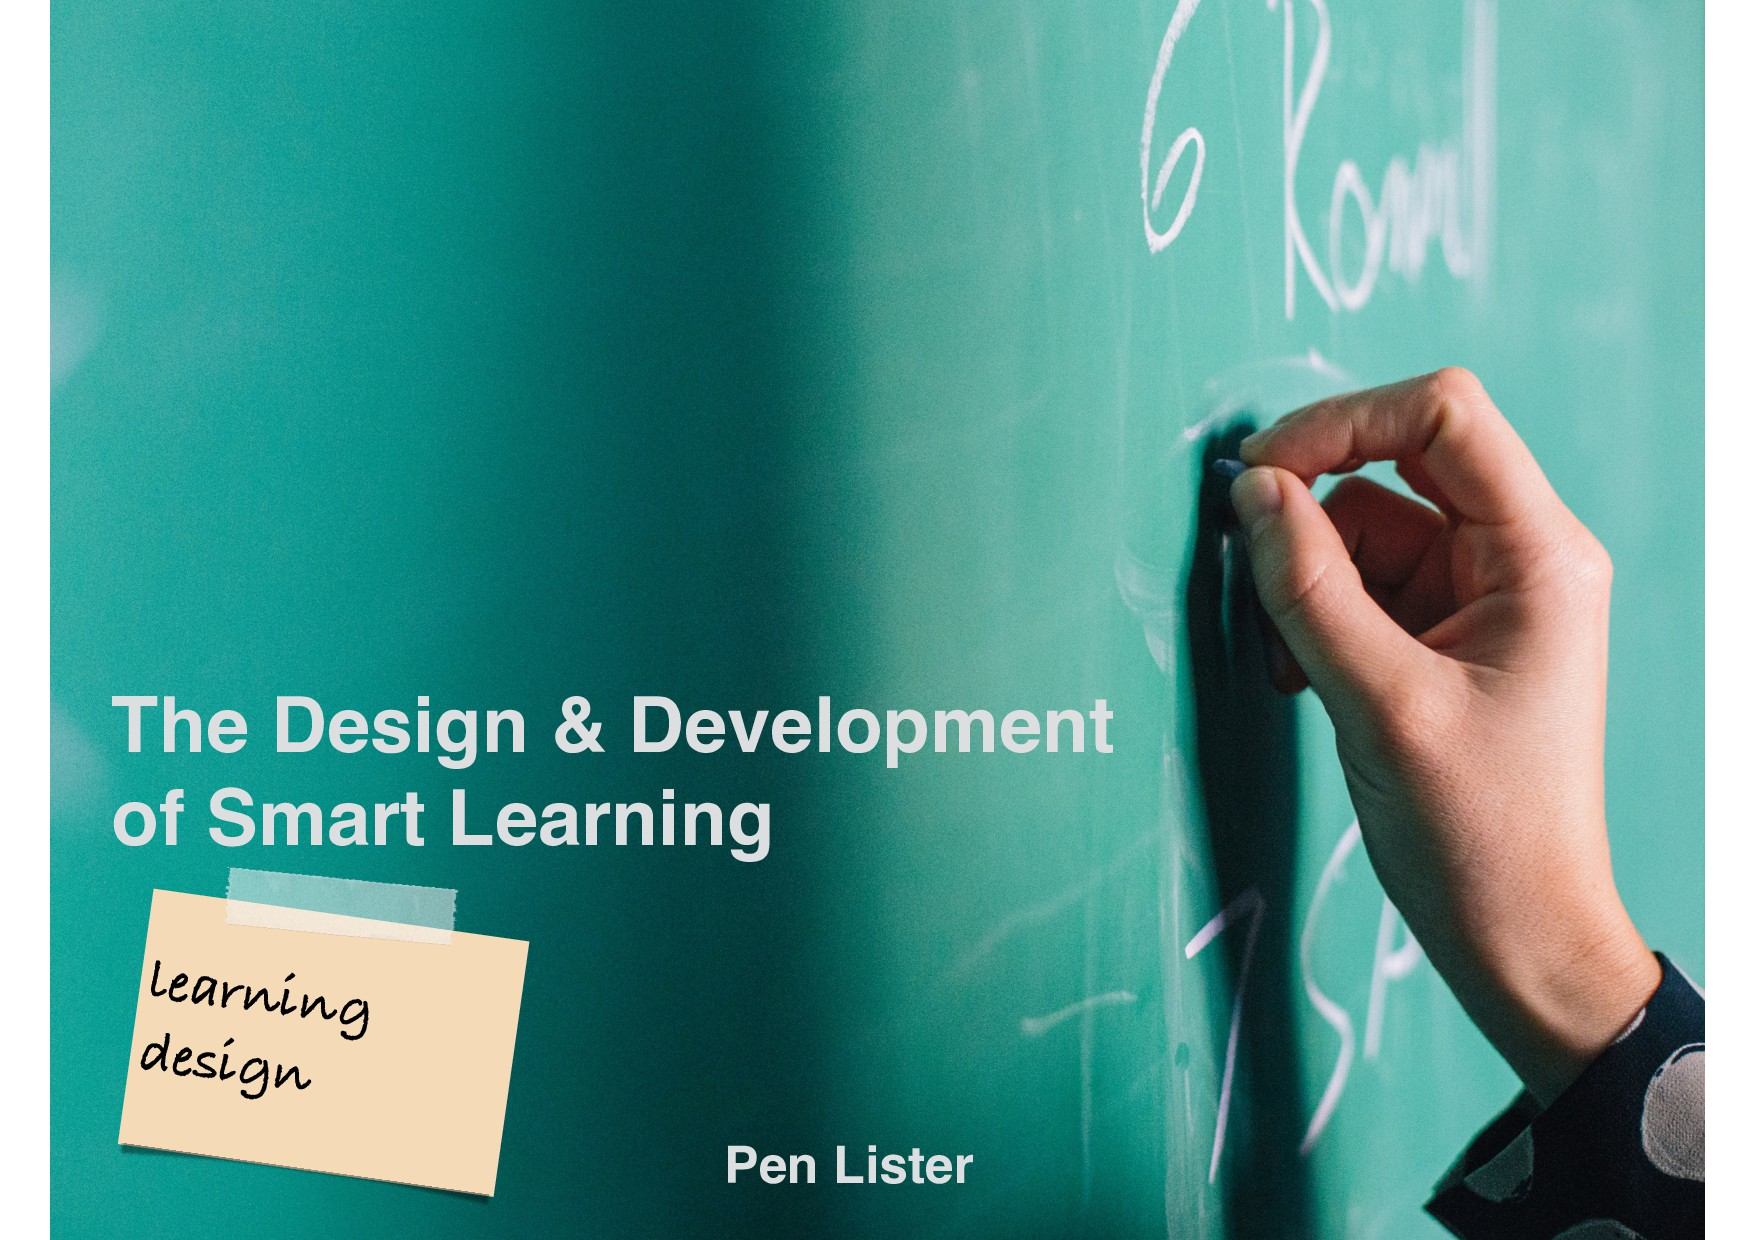 learning design The Design & Development of Sma...